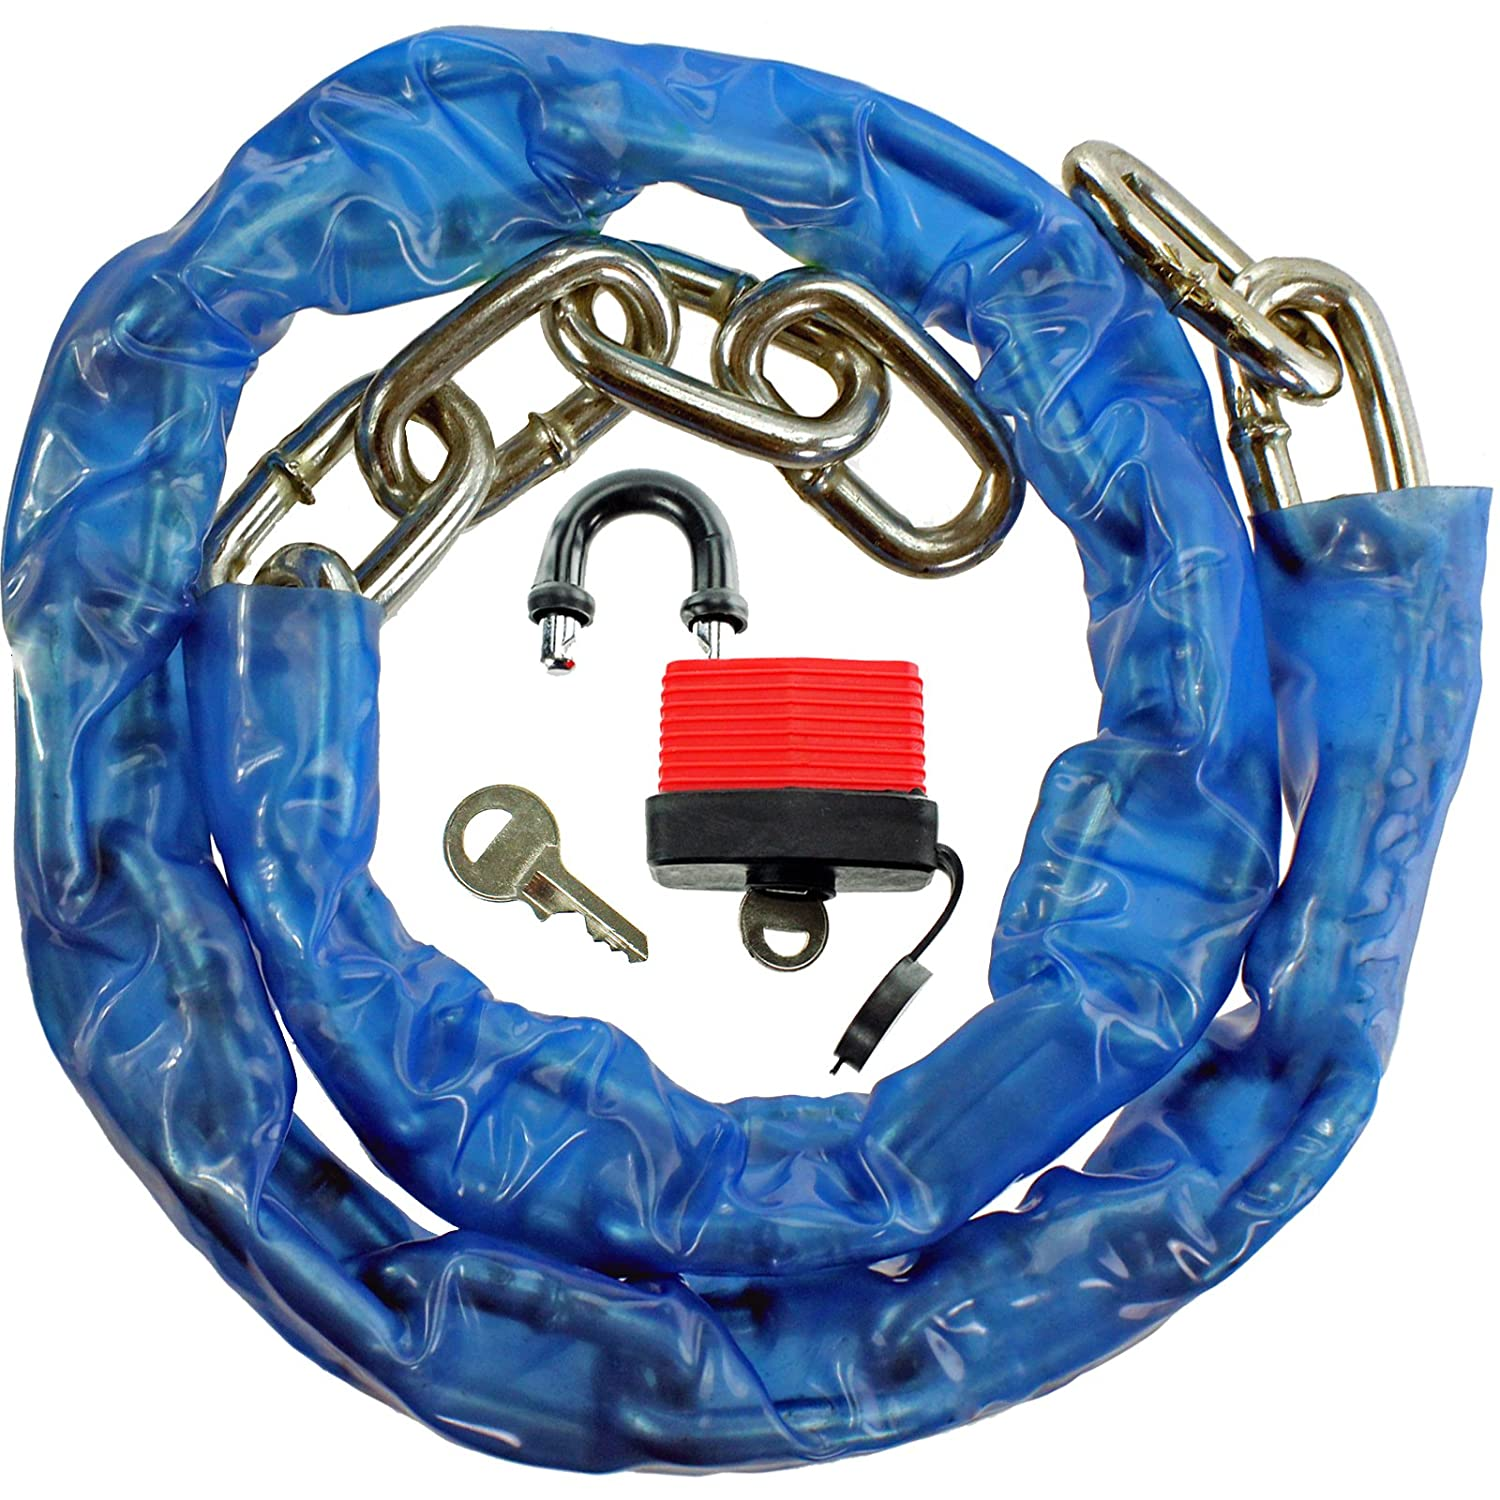 SPARES2GO 1m Weatherproof Chain & 50mm Security Padlock for Car Park Garage Yard Lock (1 Metre)